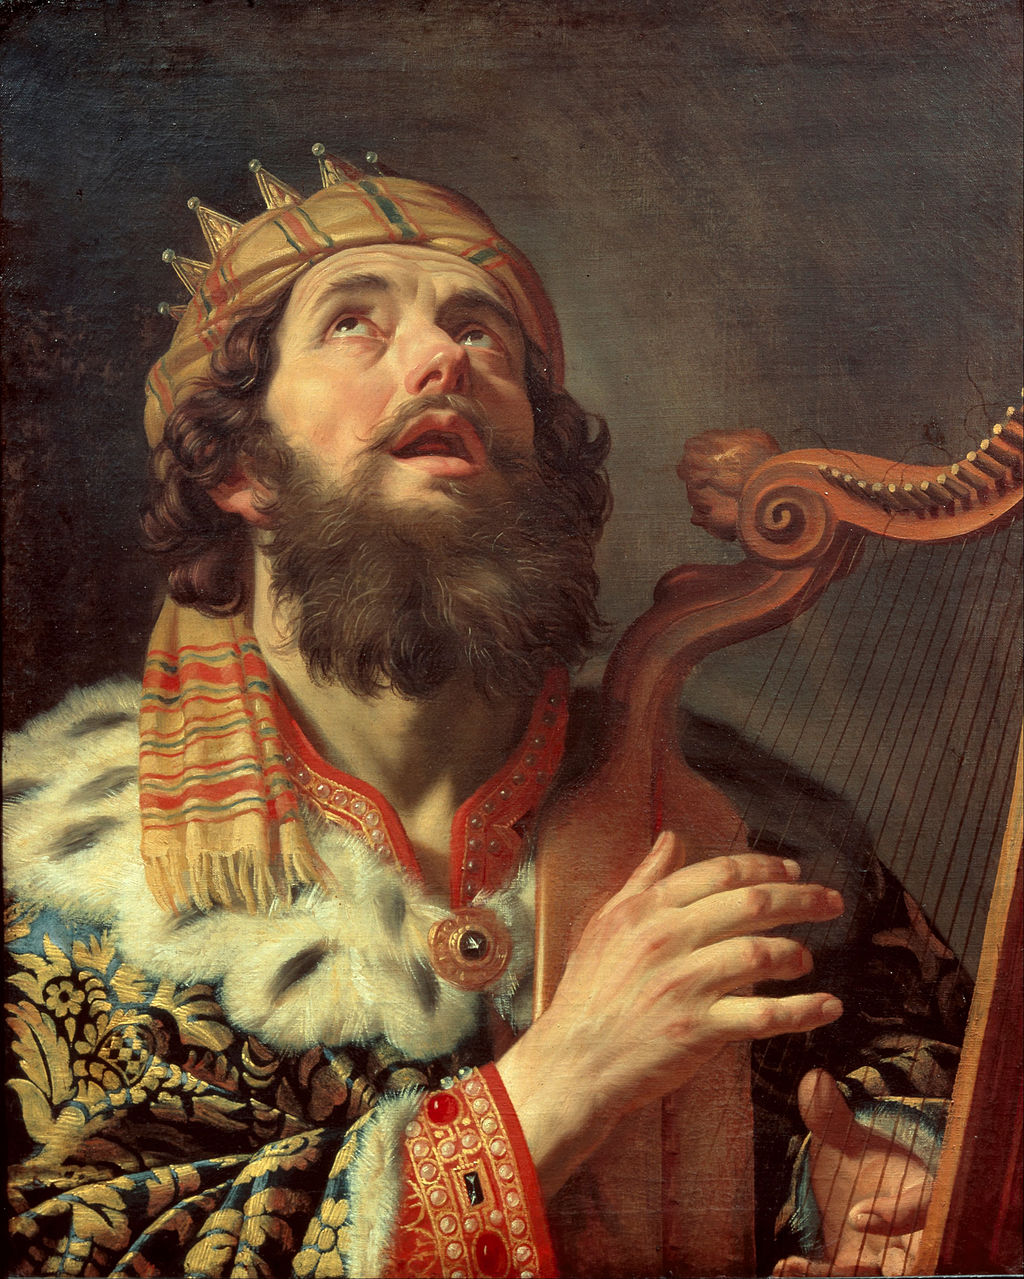 1024px-Gerard_van_Honthorst_-_King_David_Playing_the_Harp_-_Google_Art_Project